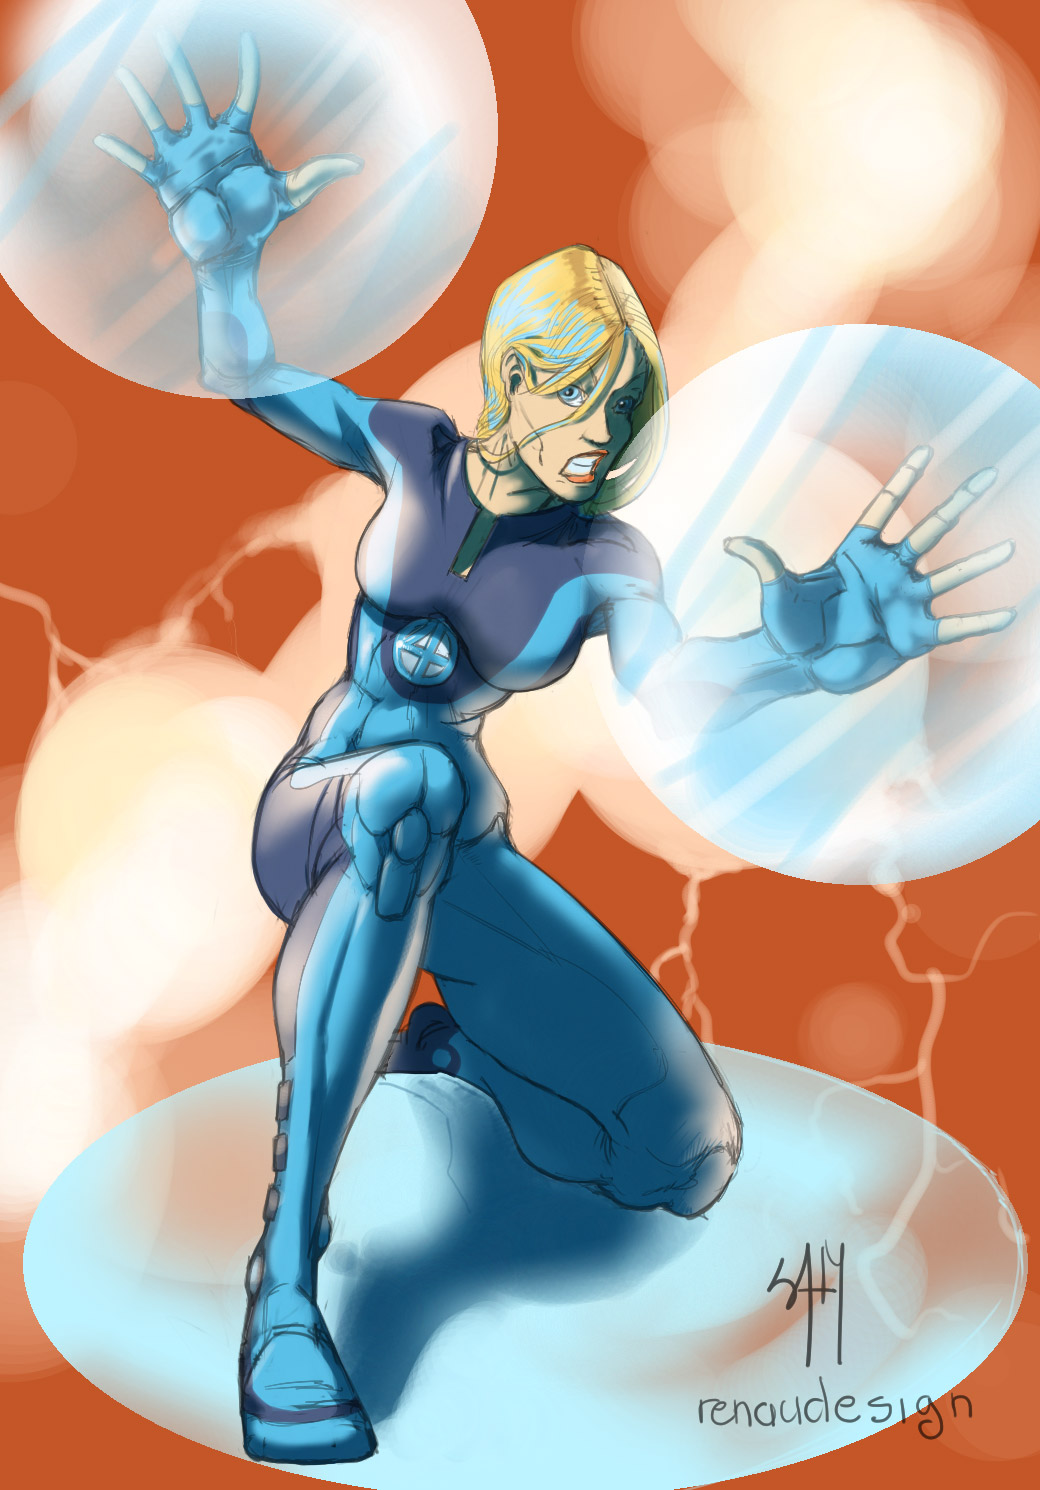 DND Live : Invisible Woman from the Fantastic Four